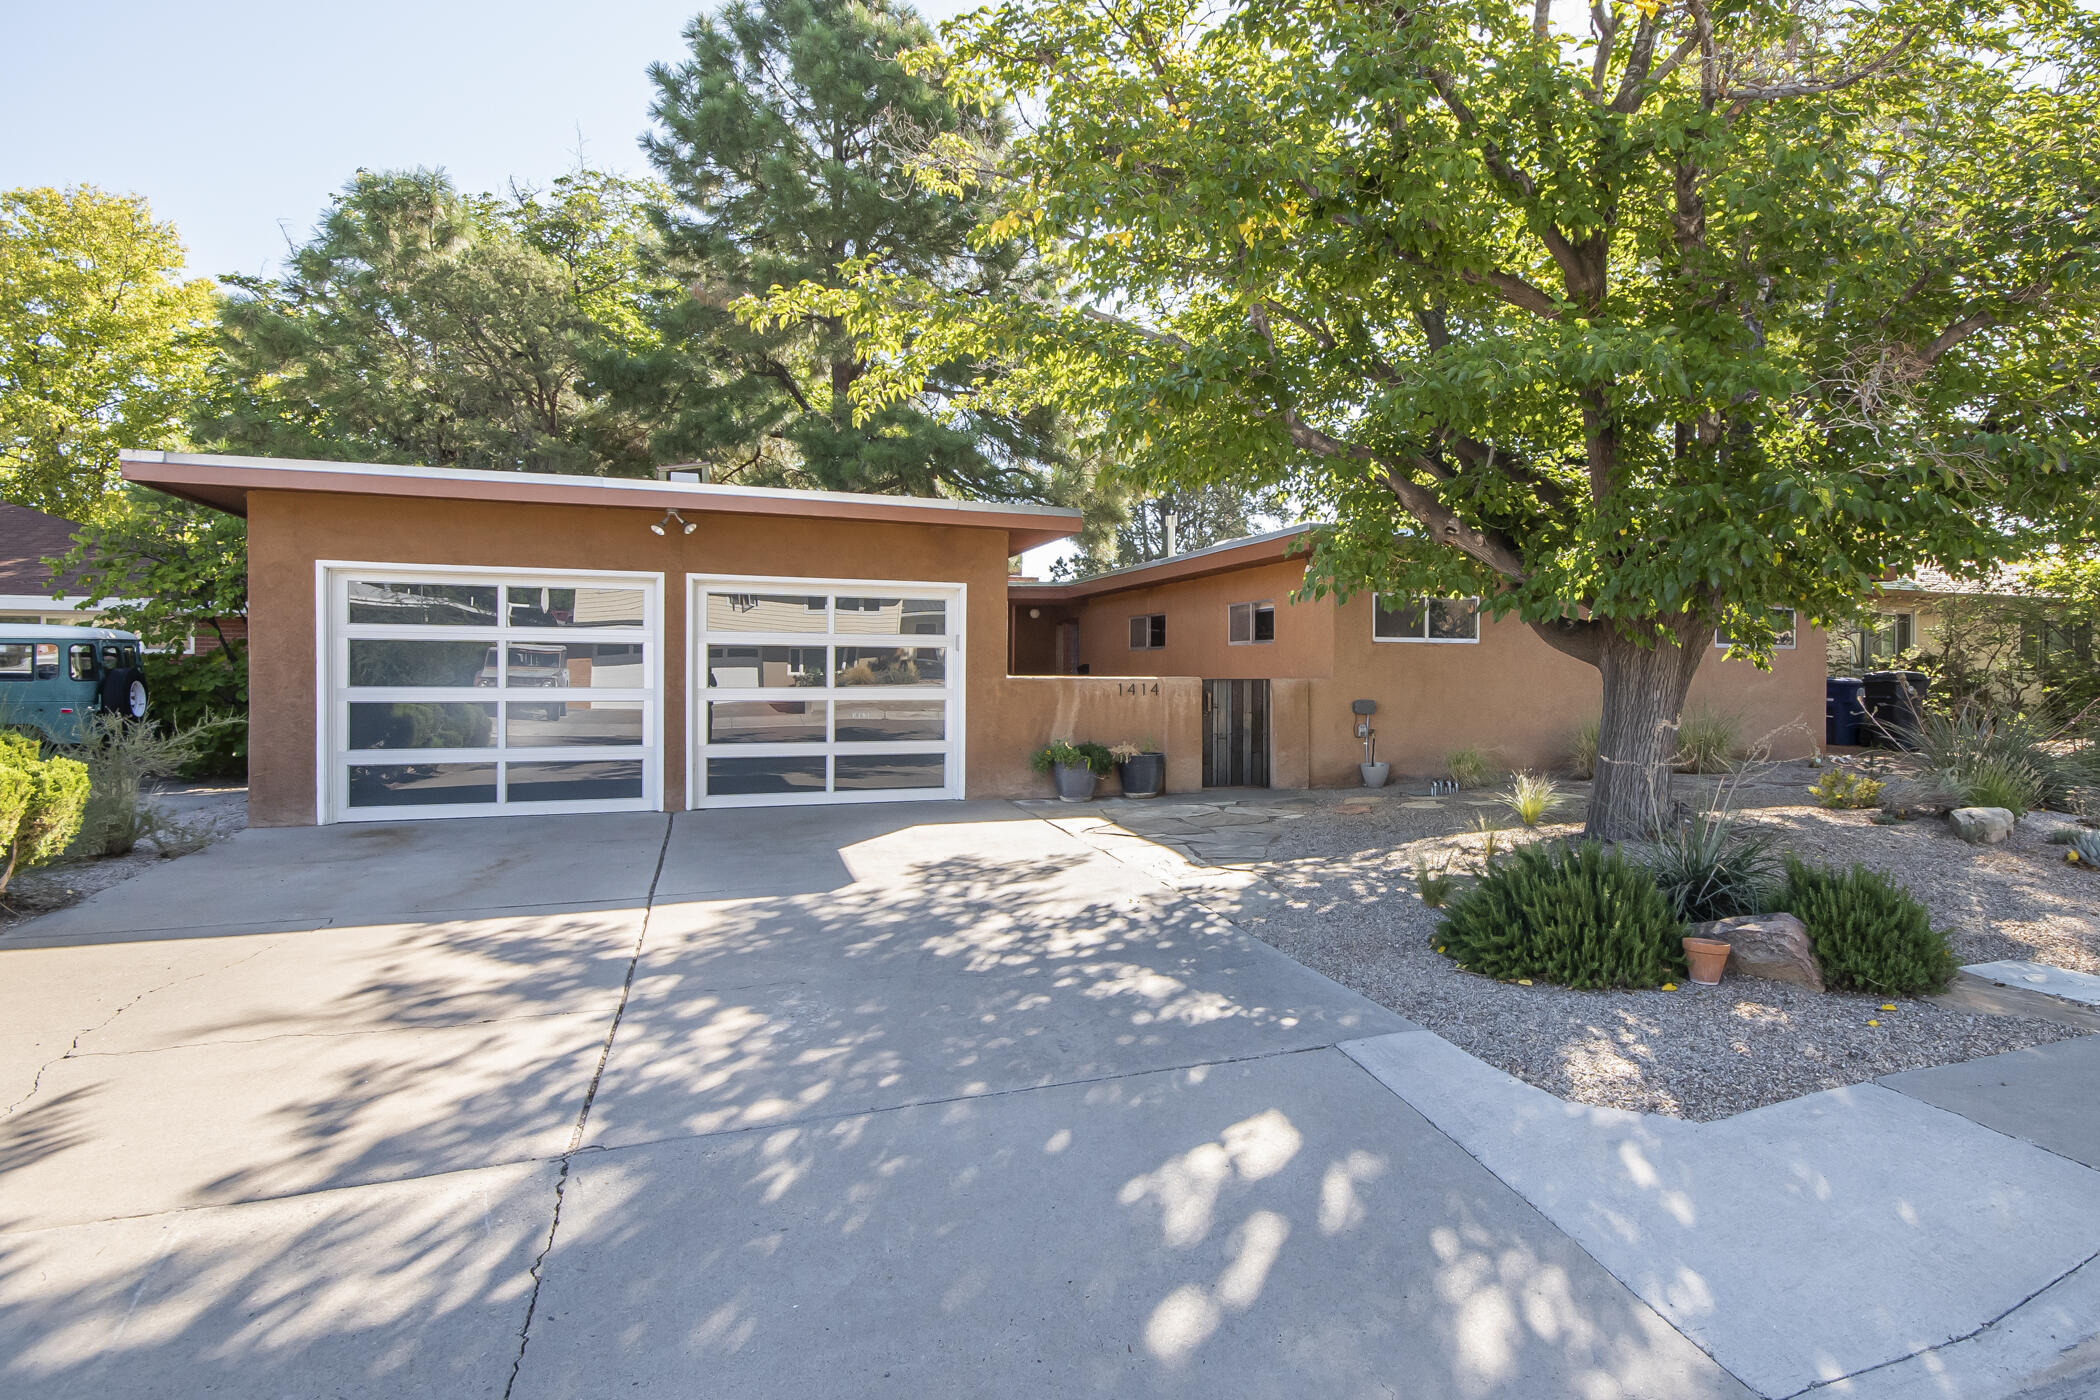 Renovated mid-century home offers contemporary updates, a light-filled open floorplan and amazing outdoor spaces in a centrally located UNM neighborhood. Chef's kitchen with a large center island, quartz counters, ample cabinetry, wine cooler and stainless appliances. Wall of windows and double sided fireplace in greatroom plus second living area with built-ins. Both living spaces open to a private backyard retreat with mature landscaping, raised beds, bocce court and plenty of patio space with views of the Sandias! Insulated garage with glass doors and mini-split doubles as studio/workout/flex space not included in sqft. Remodeled bathrooms, seller owner solar panels, Rachio automated irrigation system, newer washer, dryer and cooler. Convenient to 1-40, Whole Foods, Altura & Summit Park.